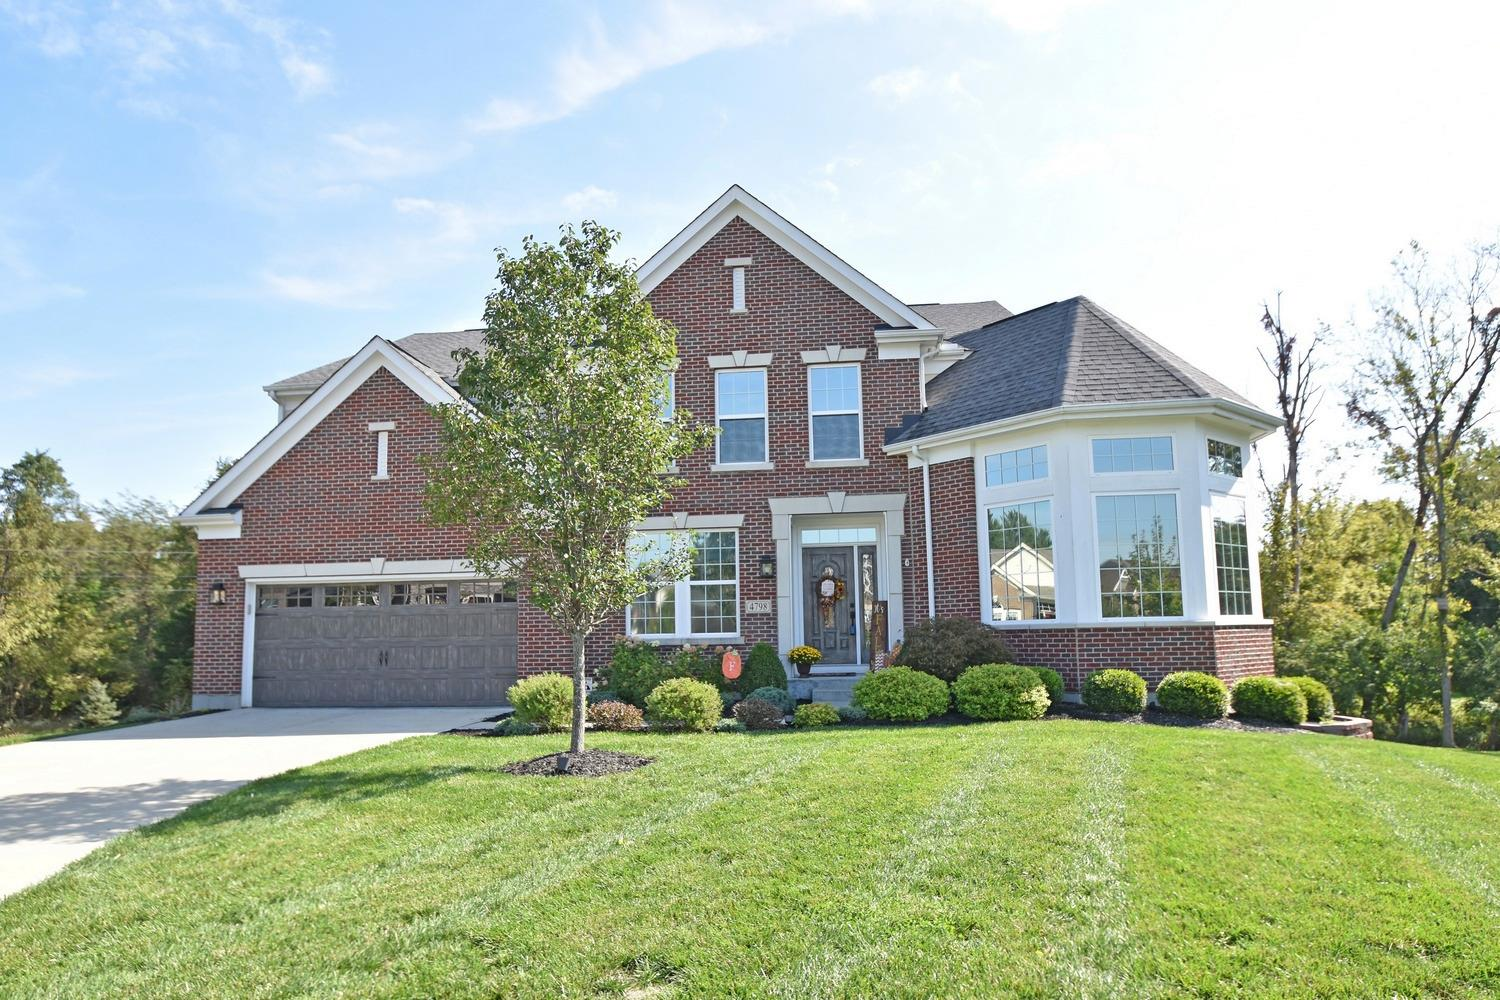 Property for sale at 4798 Horseshoe Bend, Batavia Twp,  OH 45103